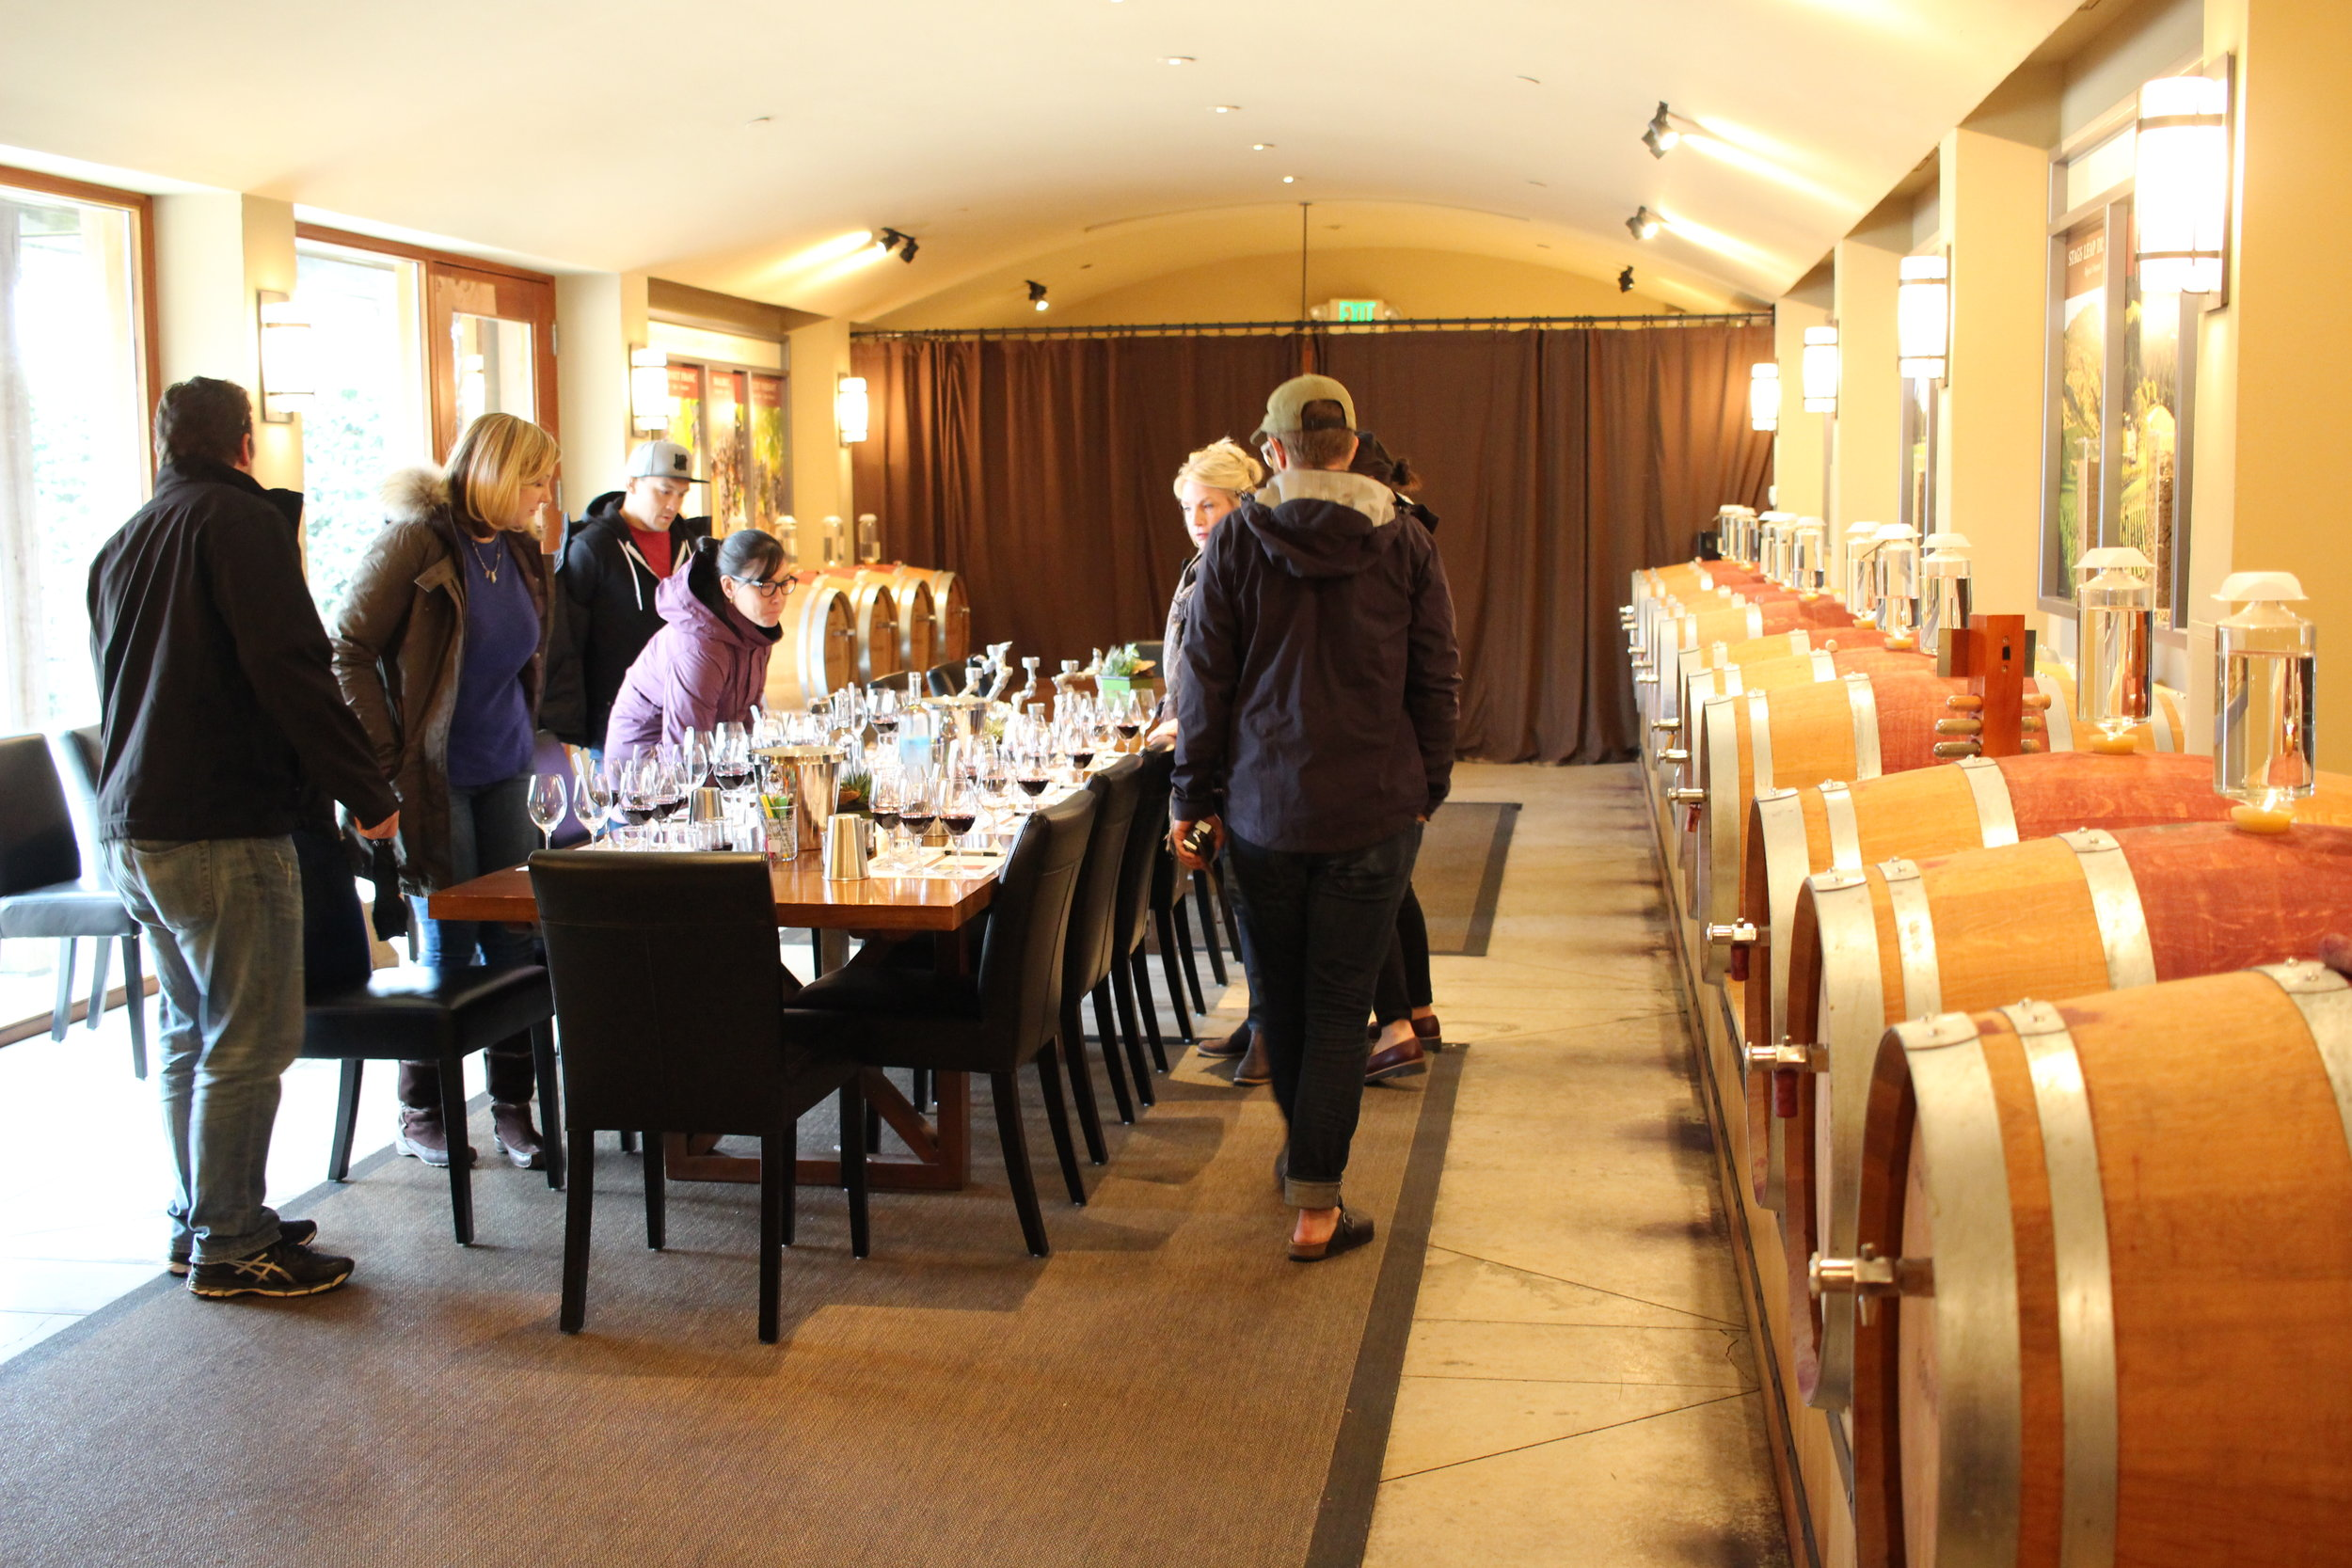 Getting Set up for some seriously fun wine blending at Conn Creek Winery in Napa